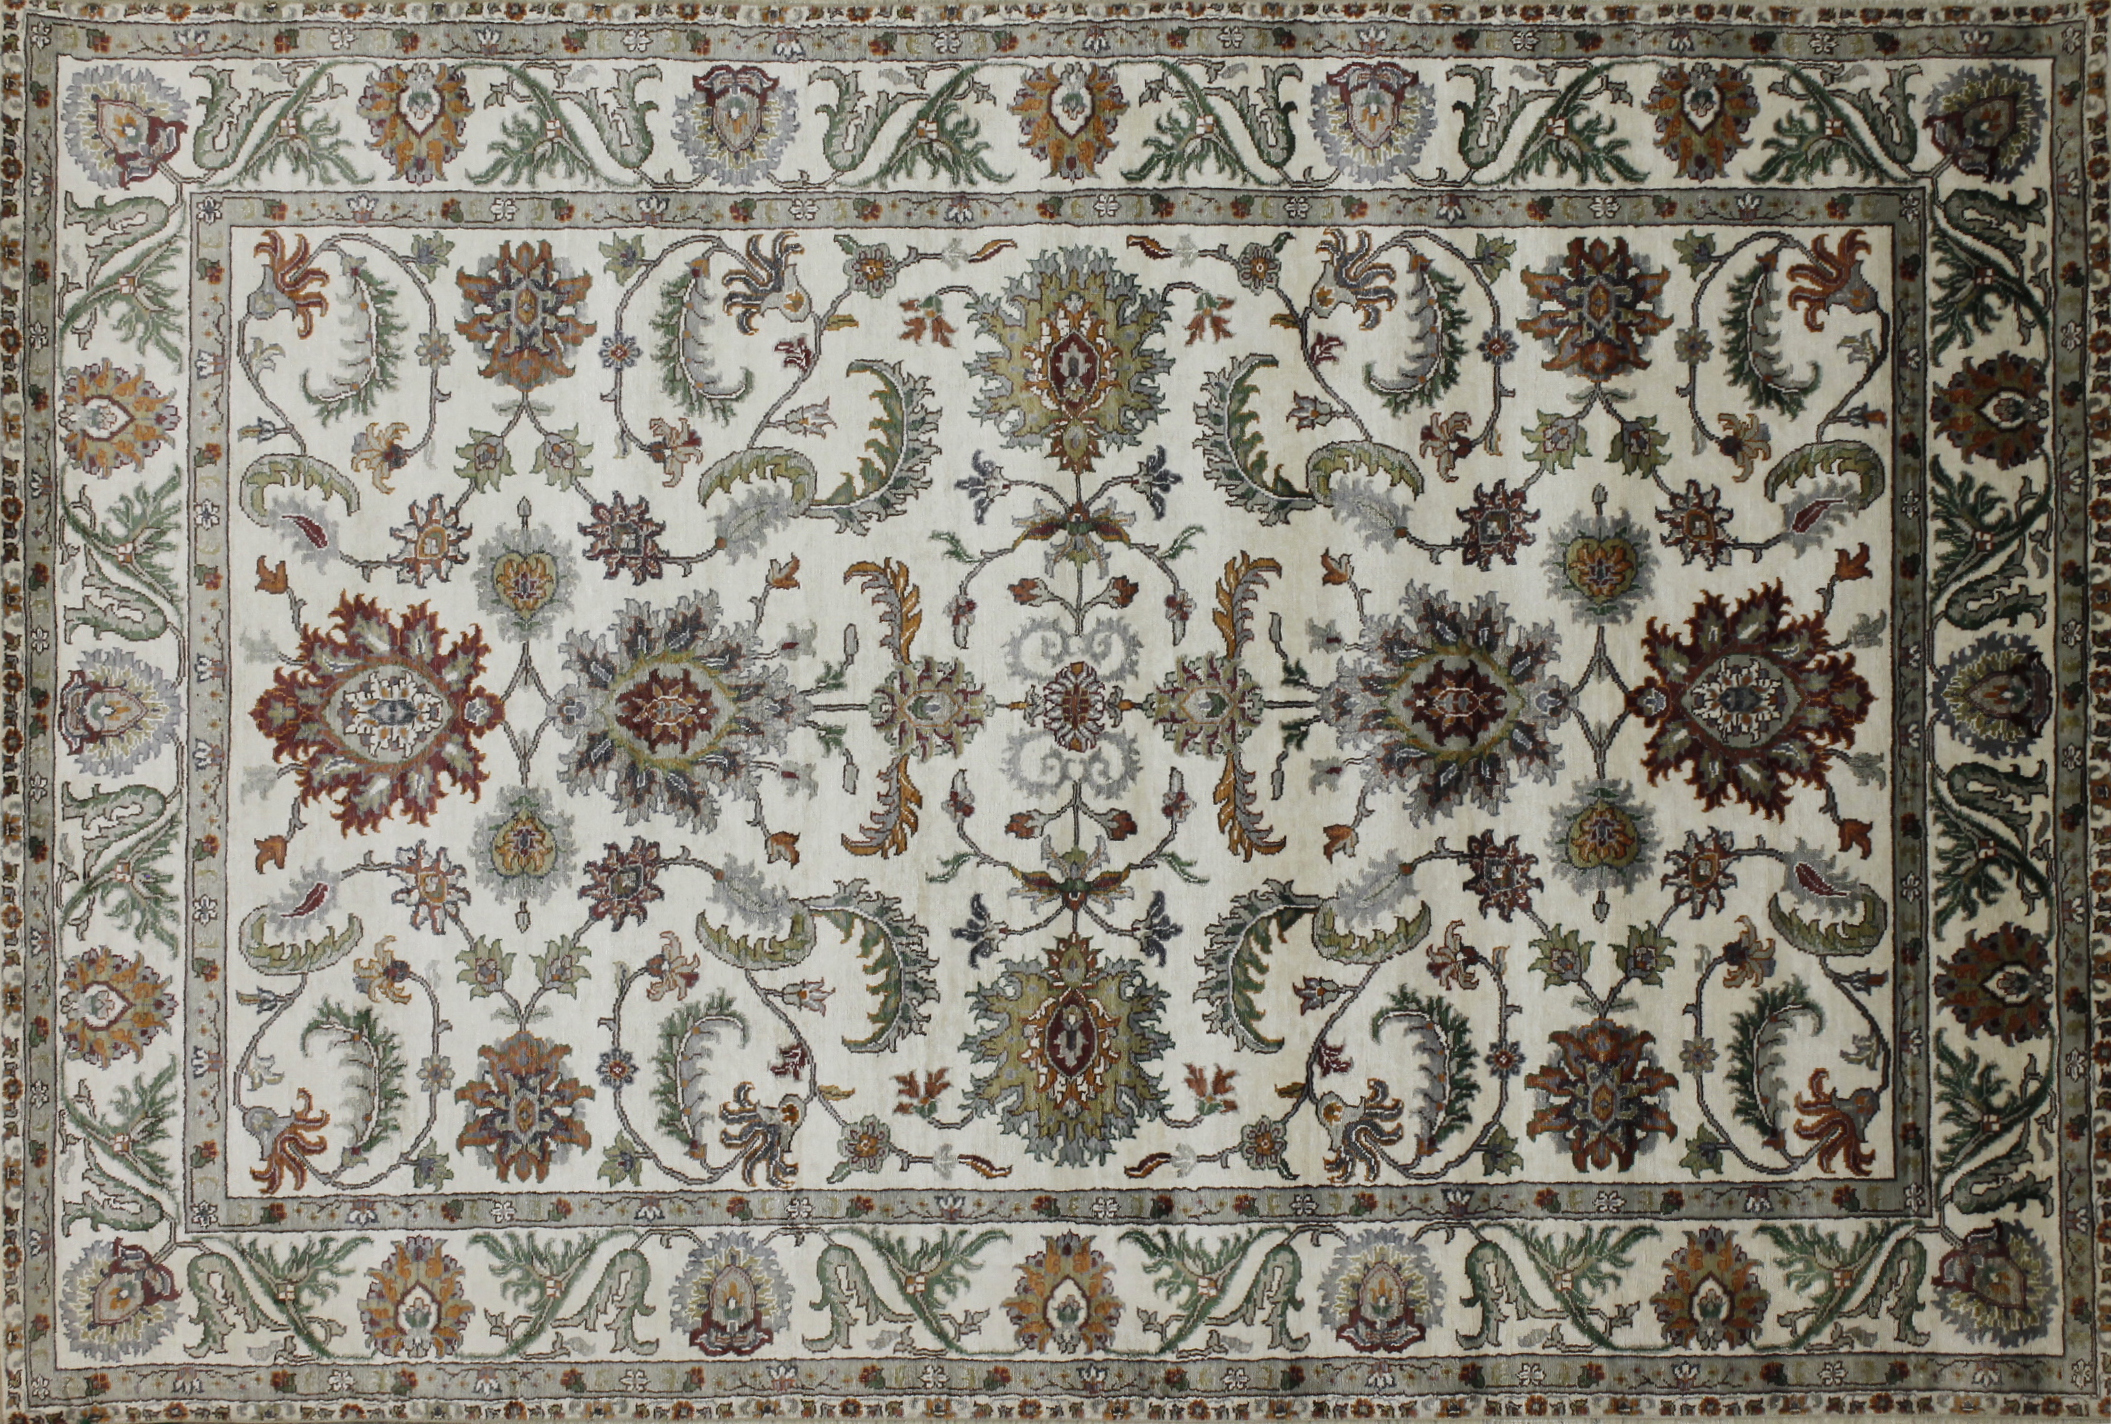 6x9 Traditional Hand Knotted Wool Area Rug - MR022410